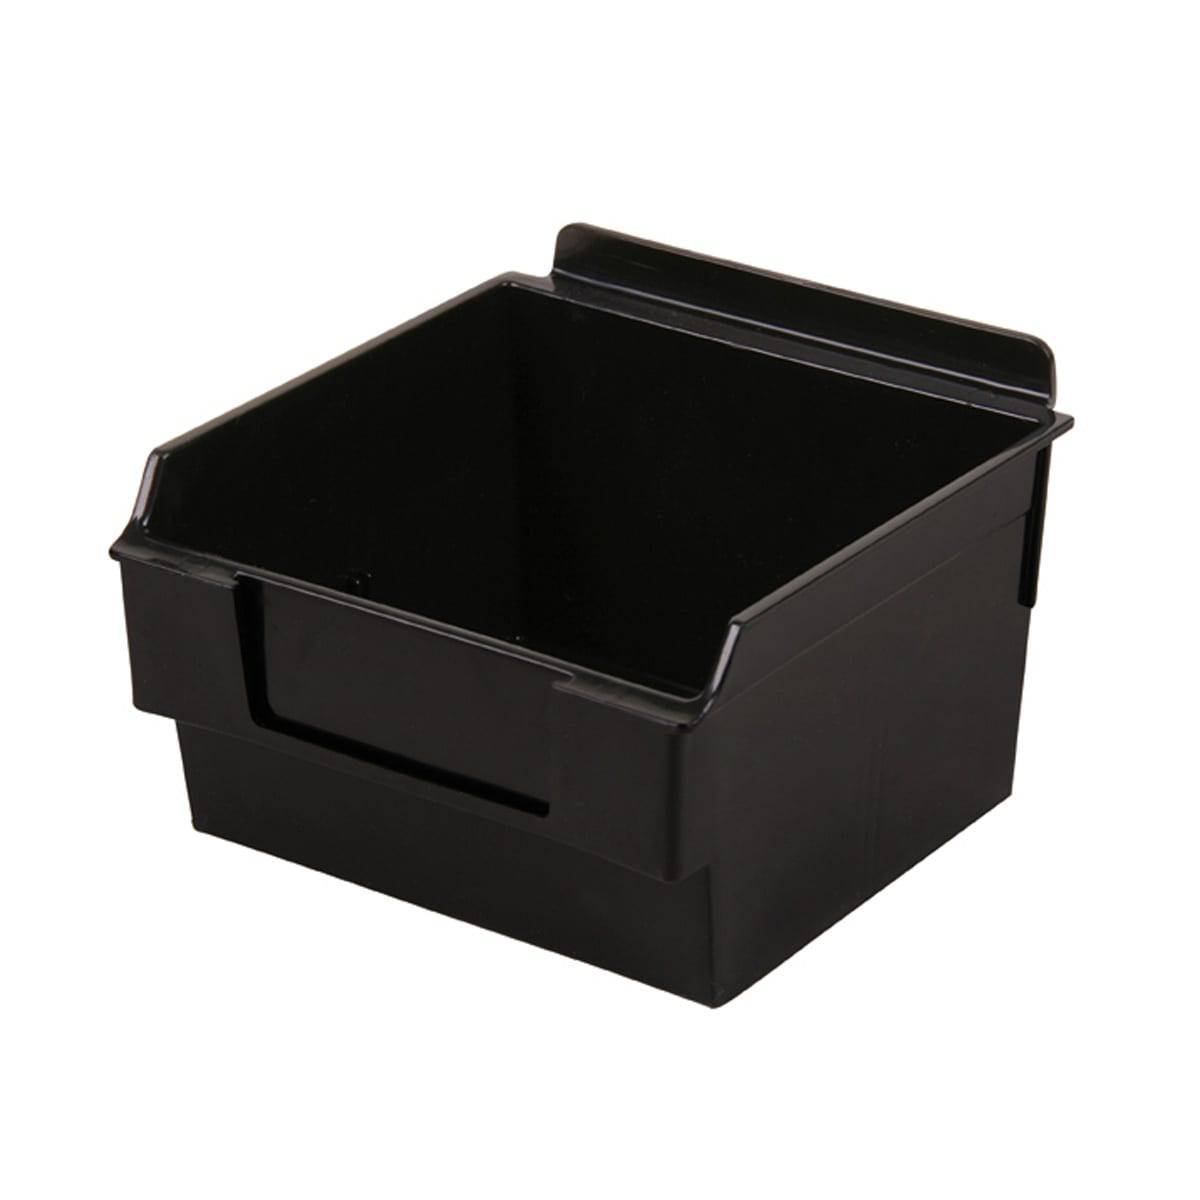 shelfbox 100 black